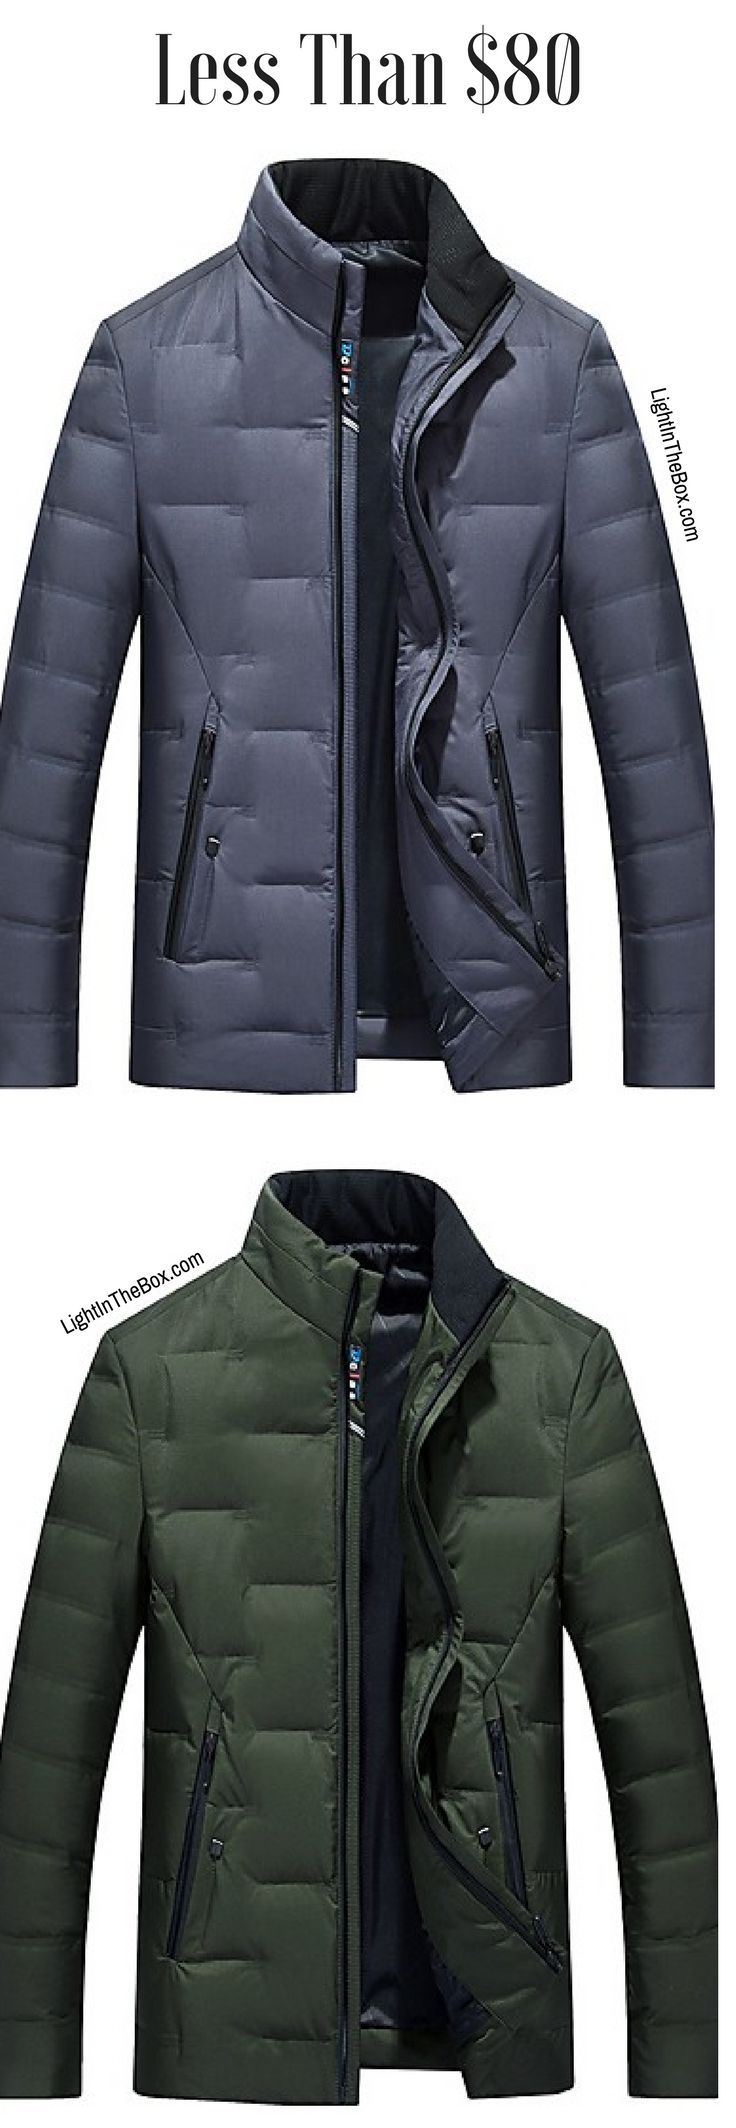 Warm padded under coat fr men. Find it in grey-blue, khaki green colours at just $79.79. Click to shop.